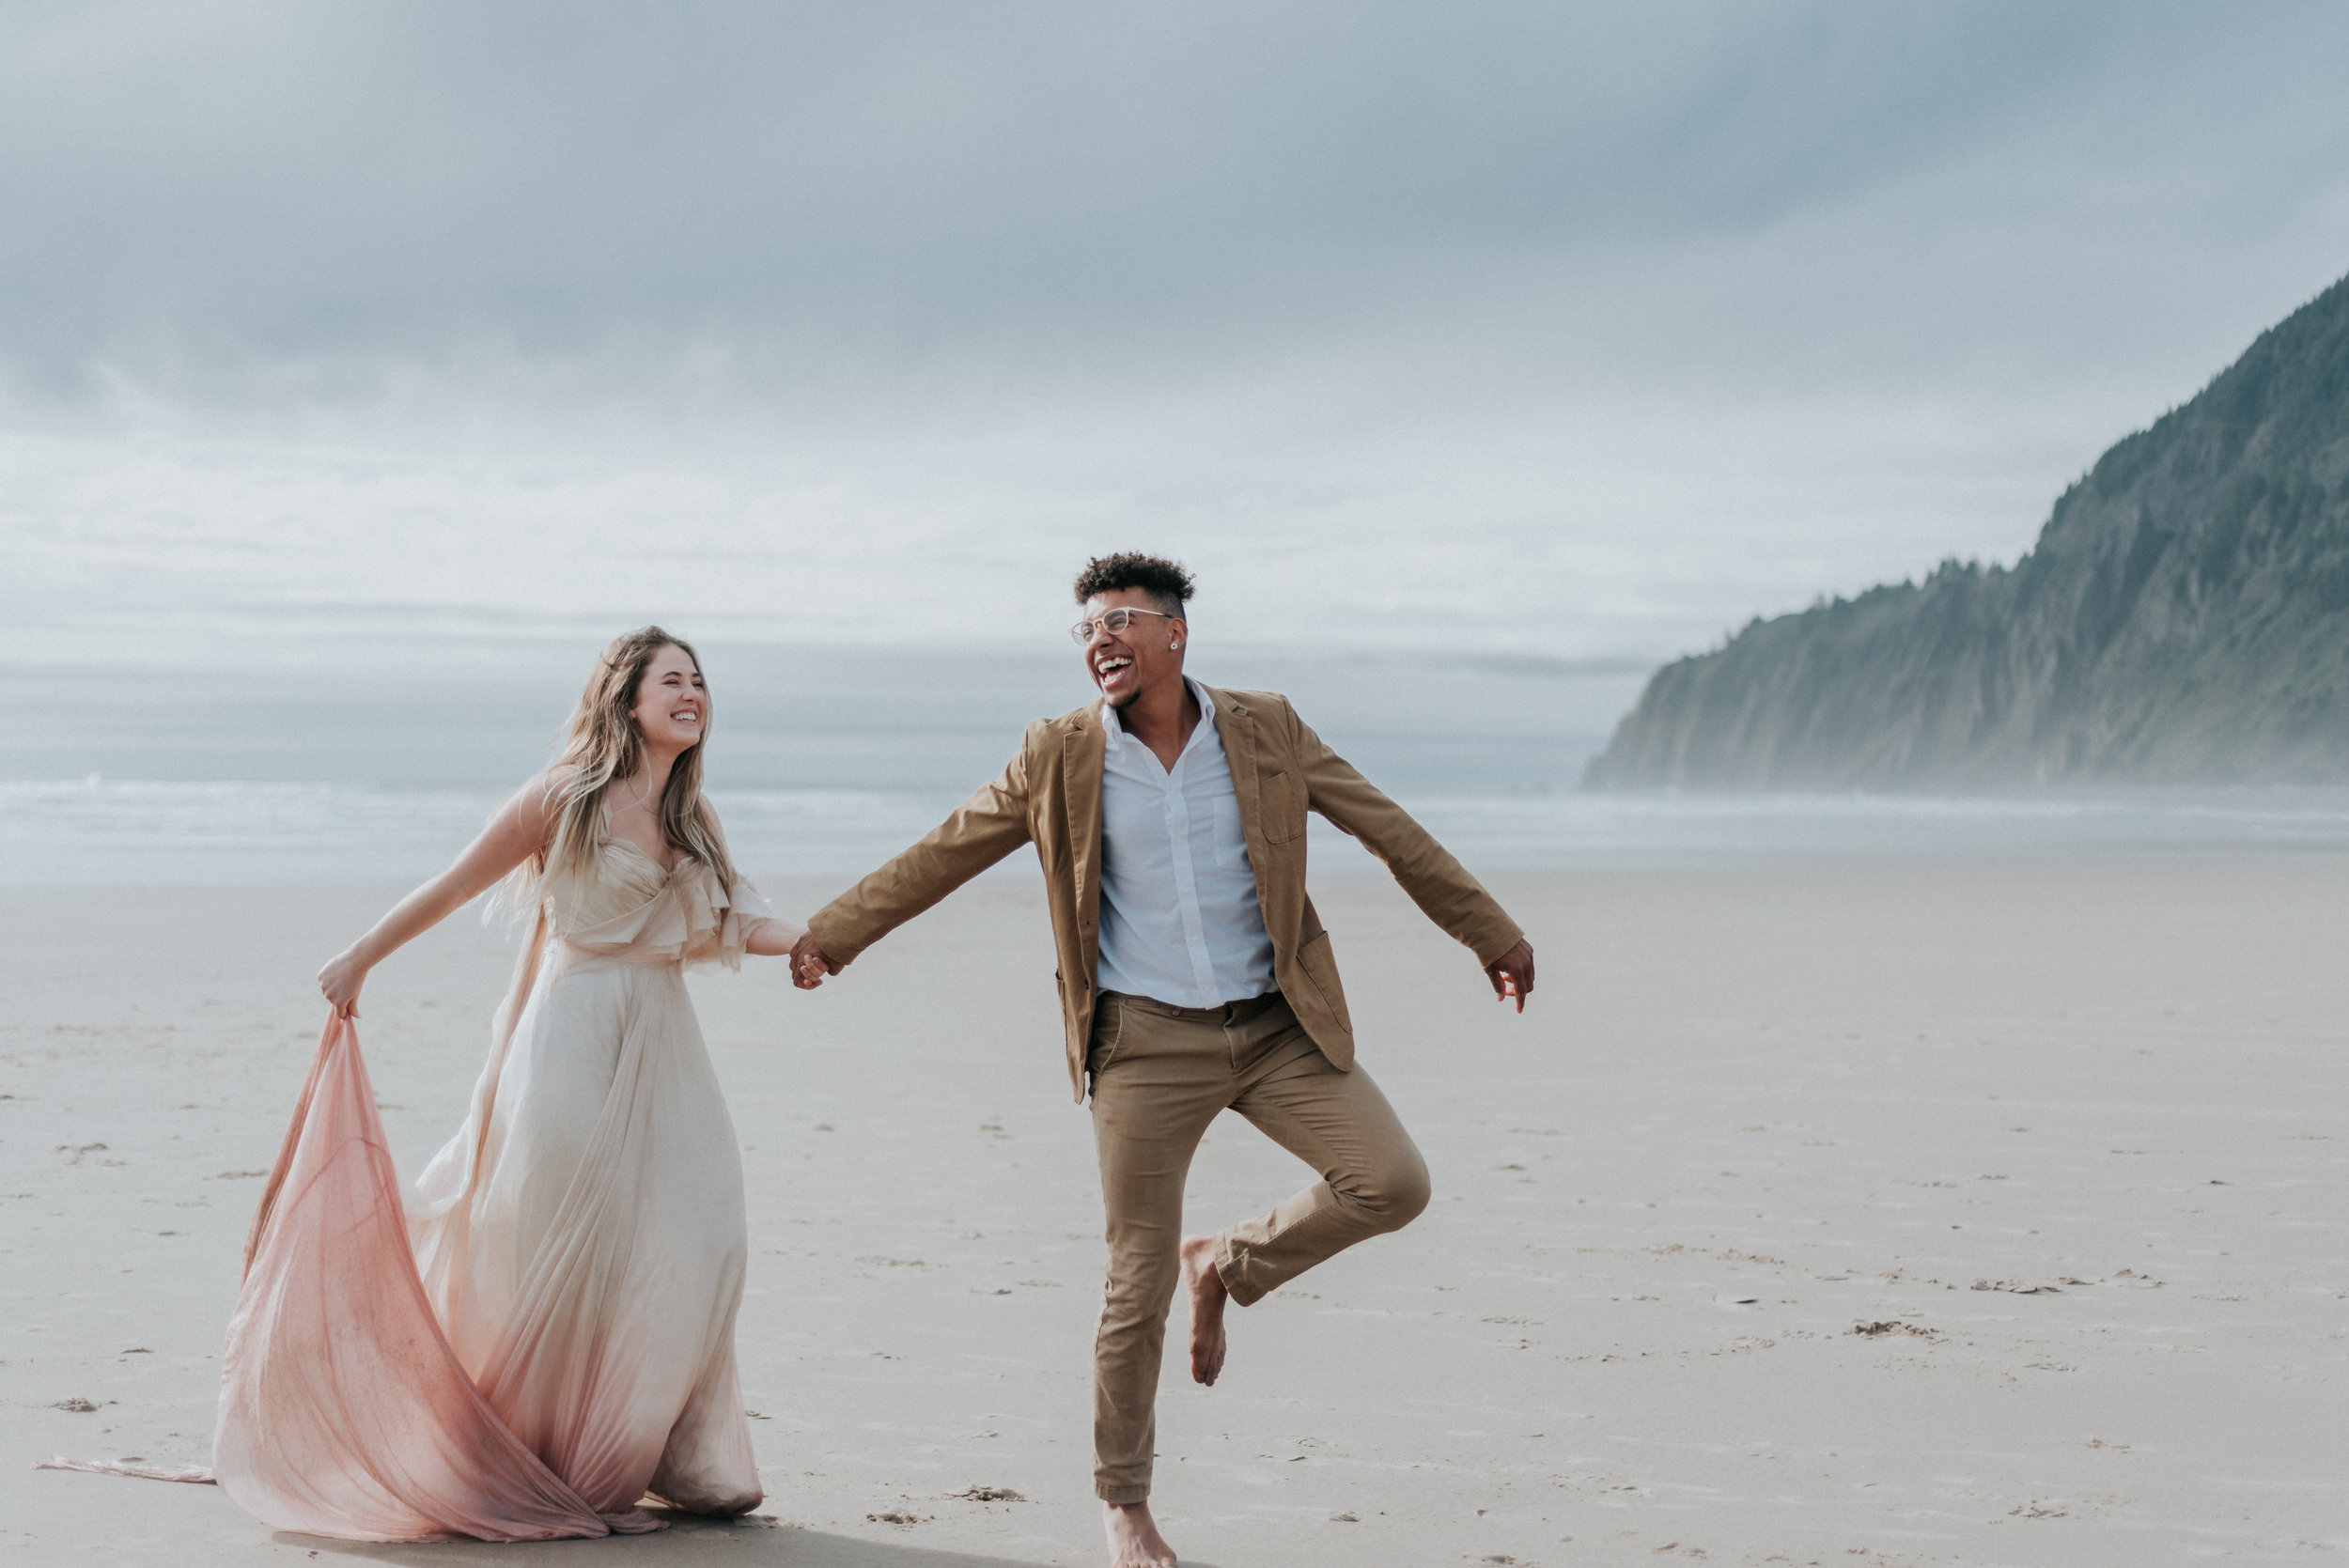 Destination+wedding photographer+based+in+Mendocino+California